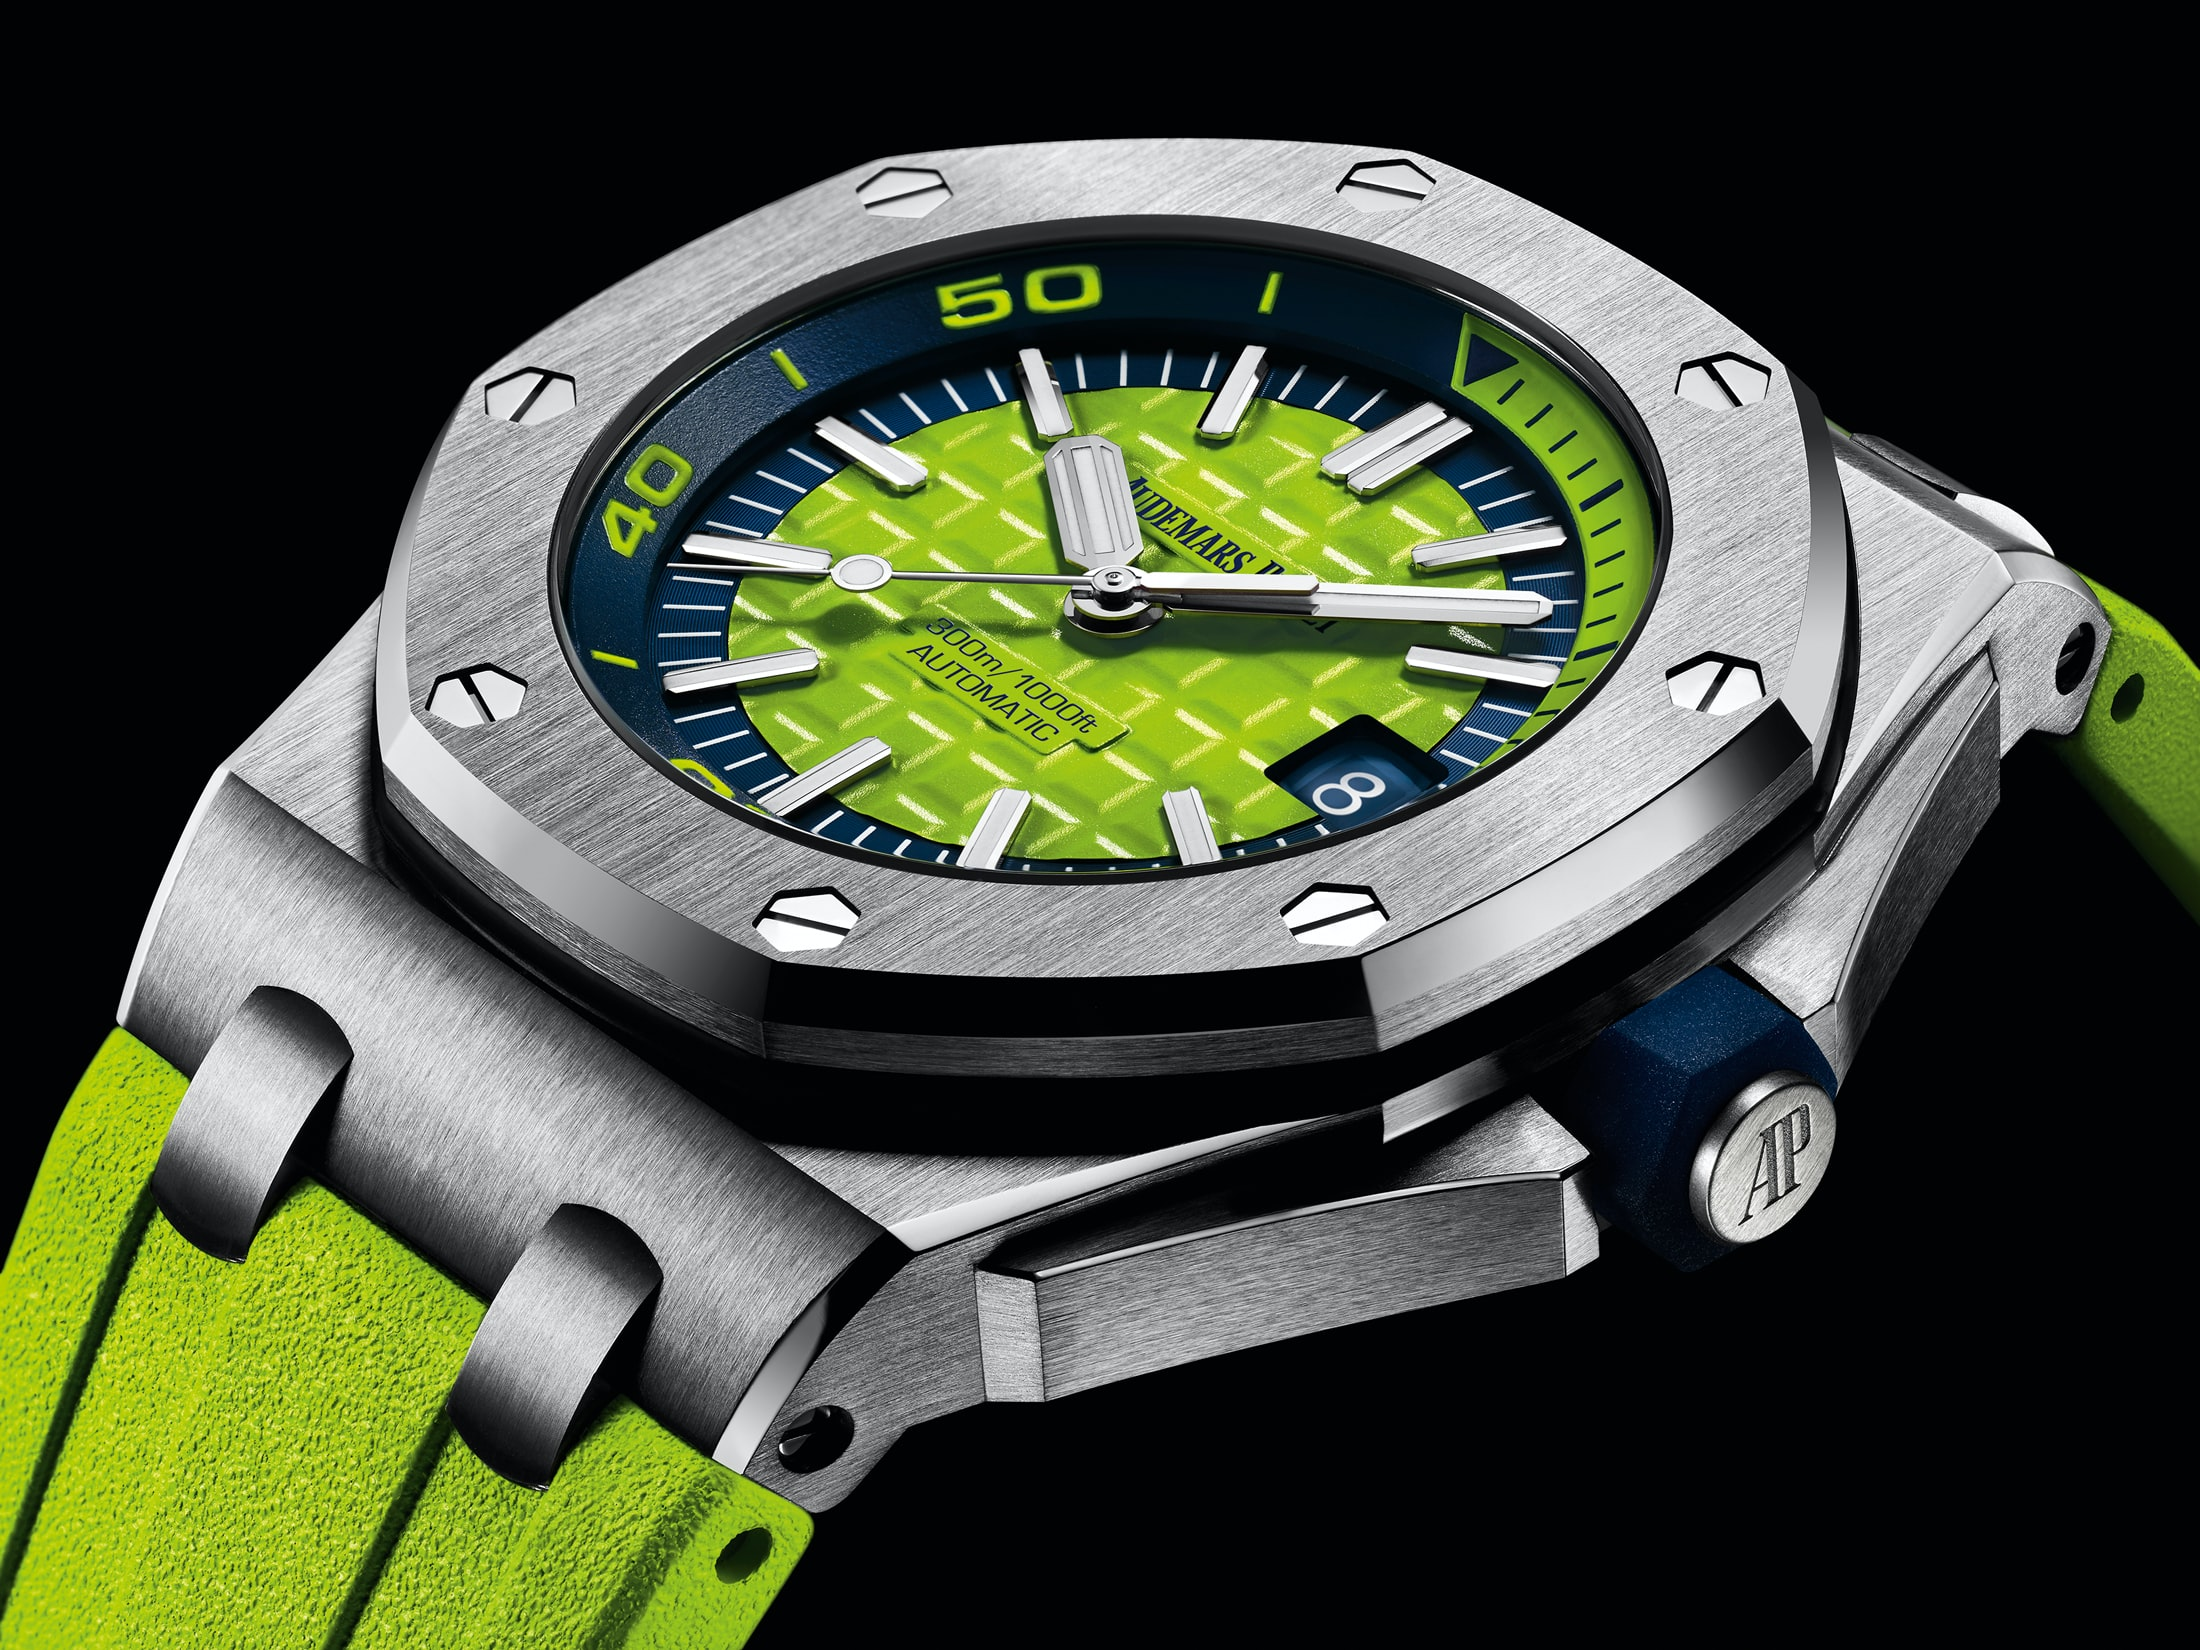 Introducing: The Audemars Piguet Royal Oak Offshore Diver In A Suite Of New (Bright) Colors Introducing: The Audemars Piguet Royal Oak Offshore Diver In A Suite Of New (Bright) Colors diver 01